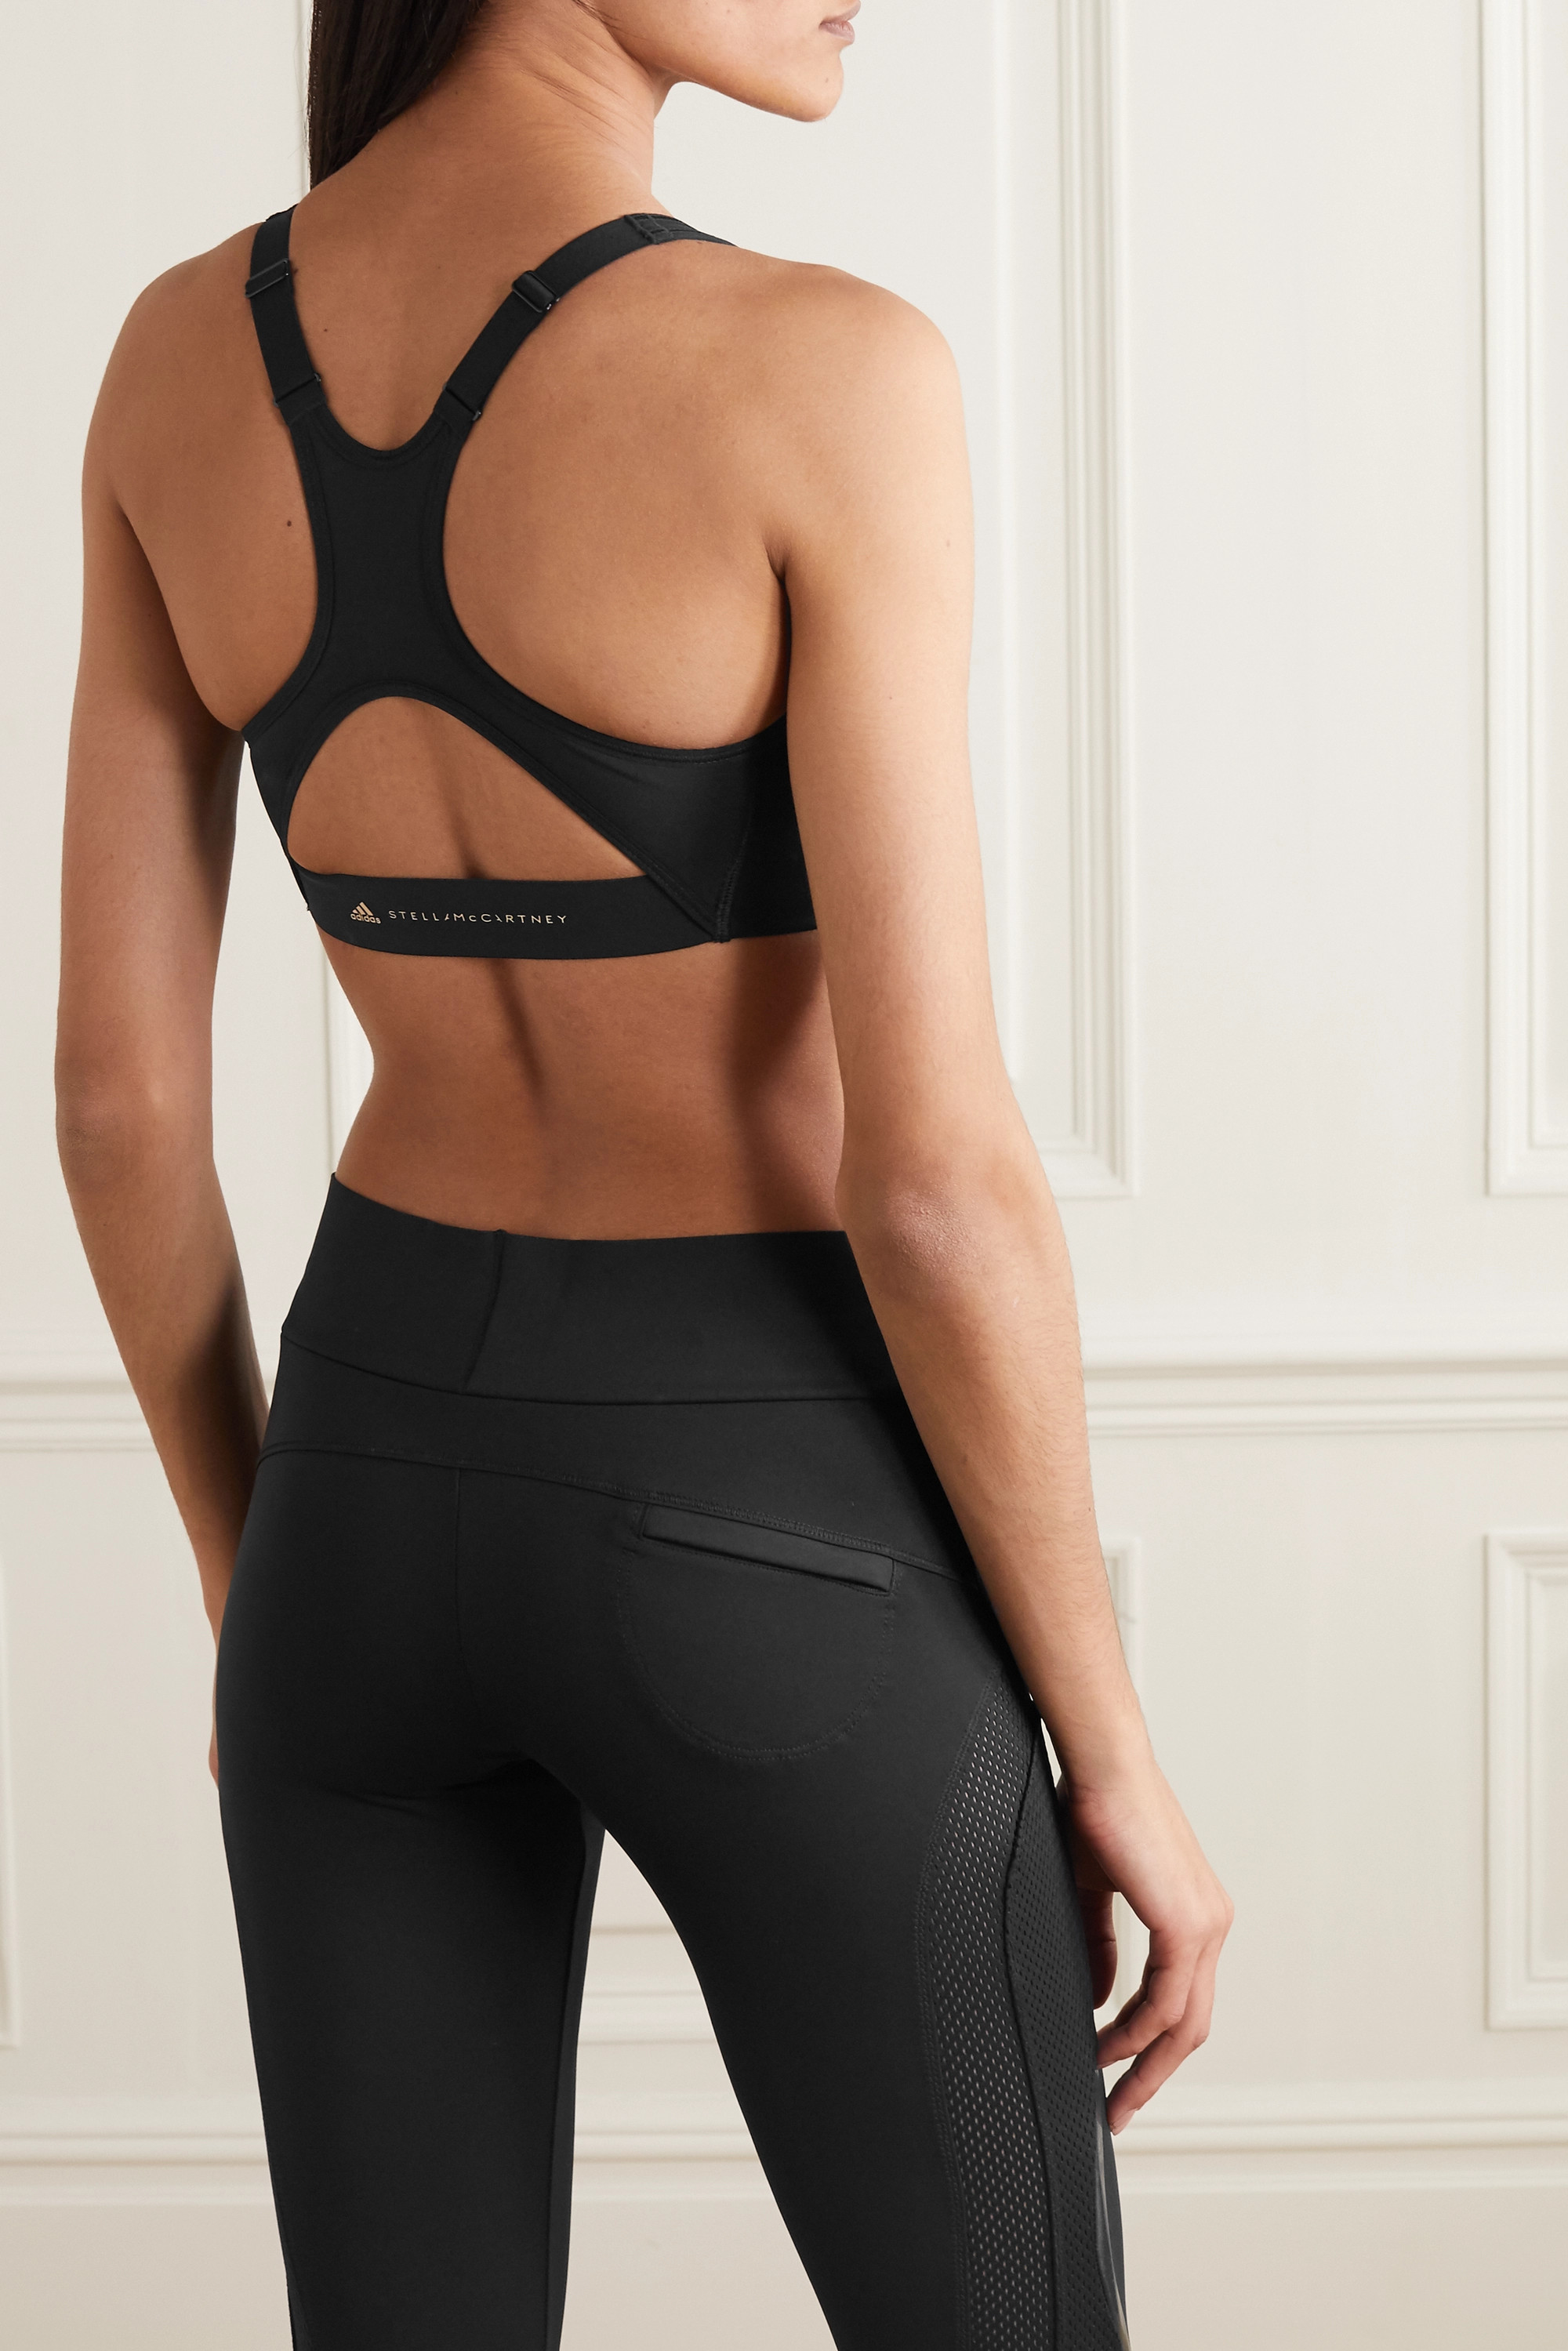 ADIDAS BY STELLA MCCARTNEY TruePurpose cutout perforated stretch sports bra